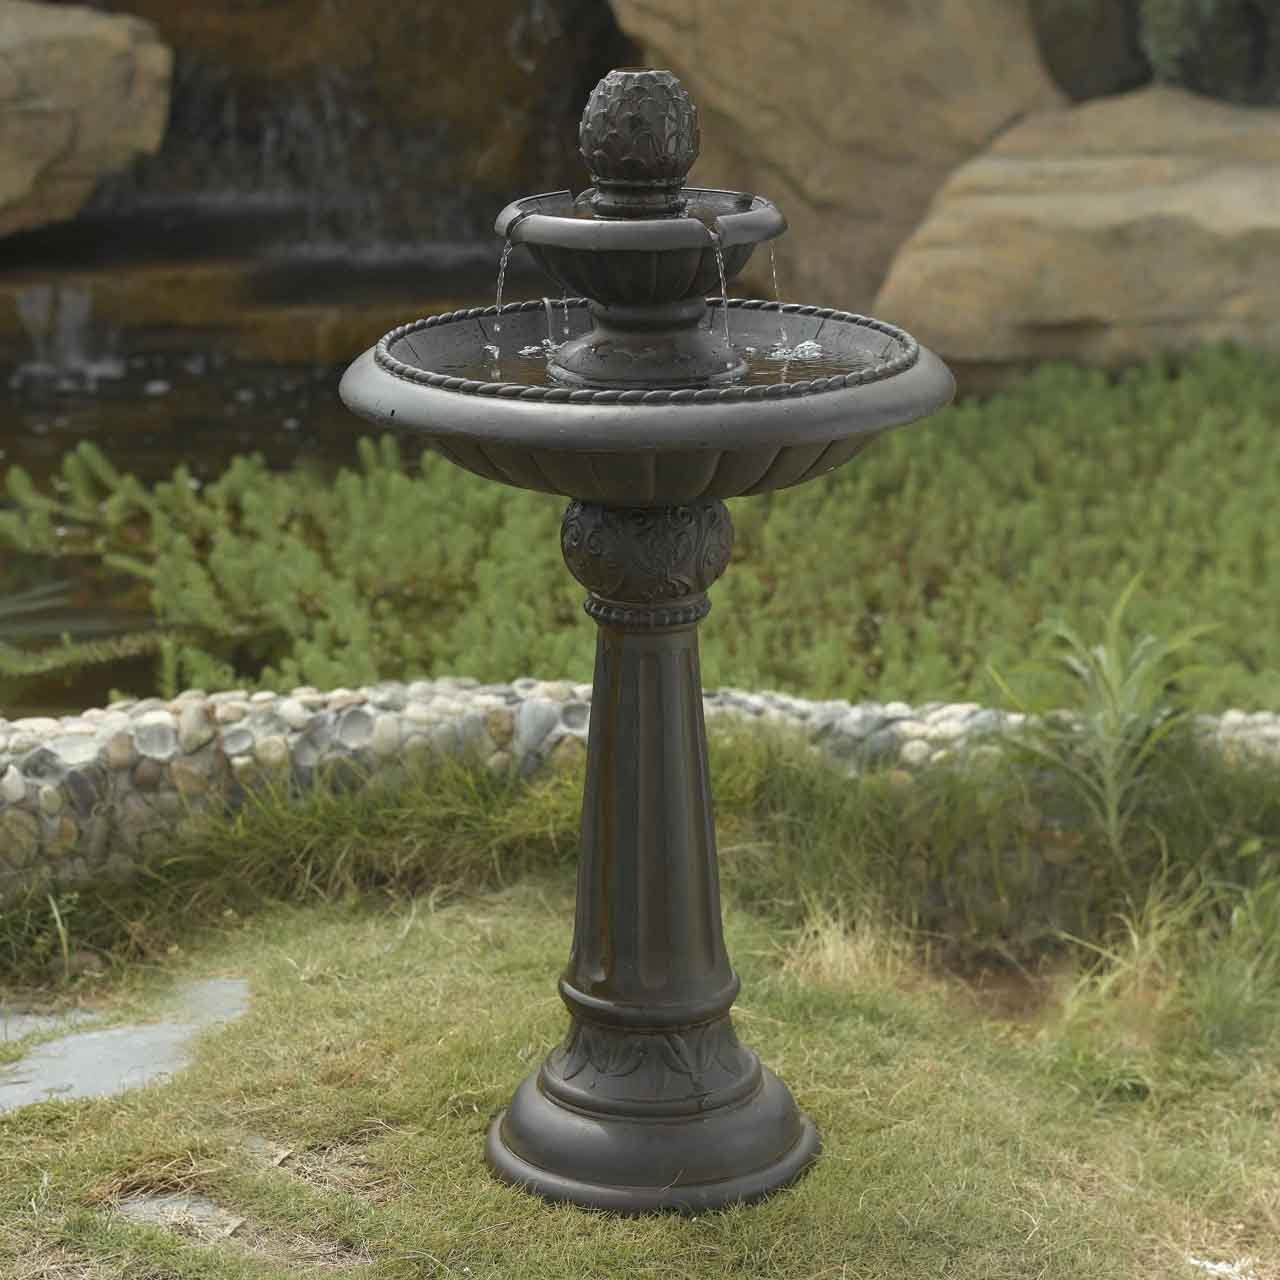 Amazon.com : Ananas Pineapple Tier Outdoor Fountain : Floor Standing  Fountains : Garden U0026 Outdoor